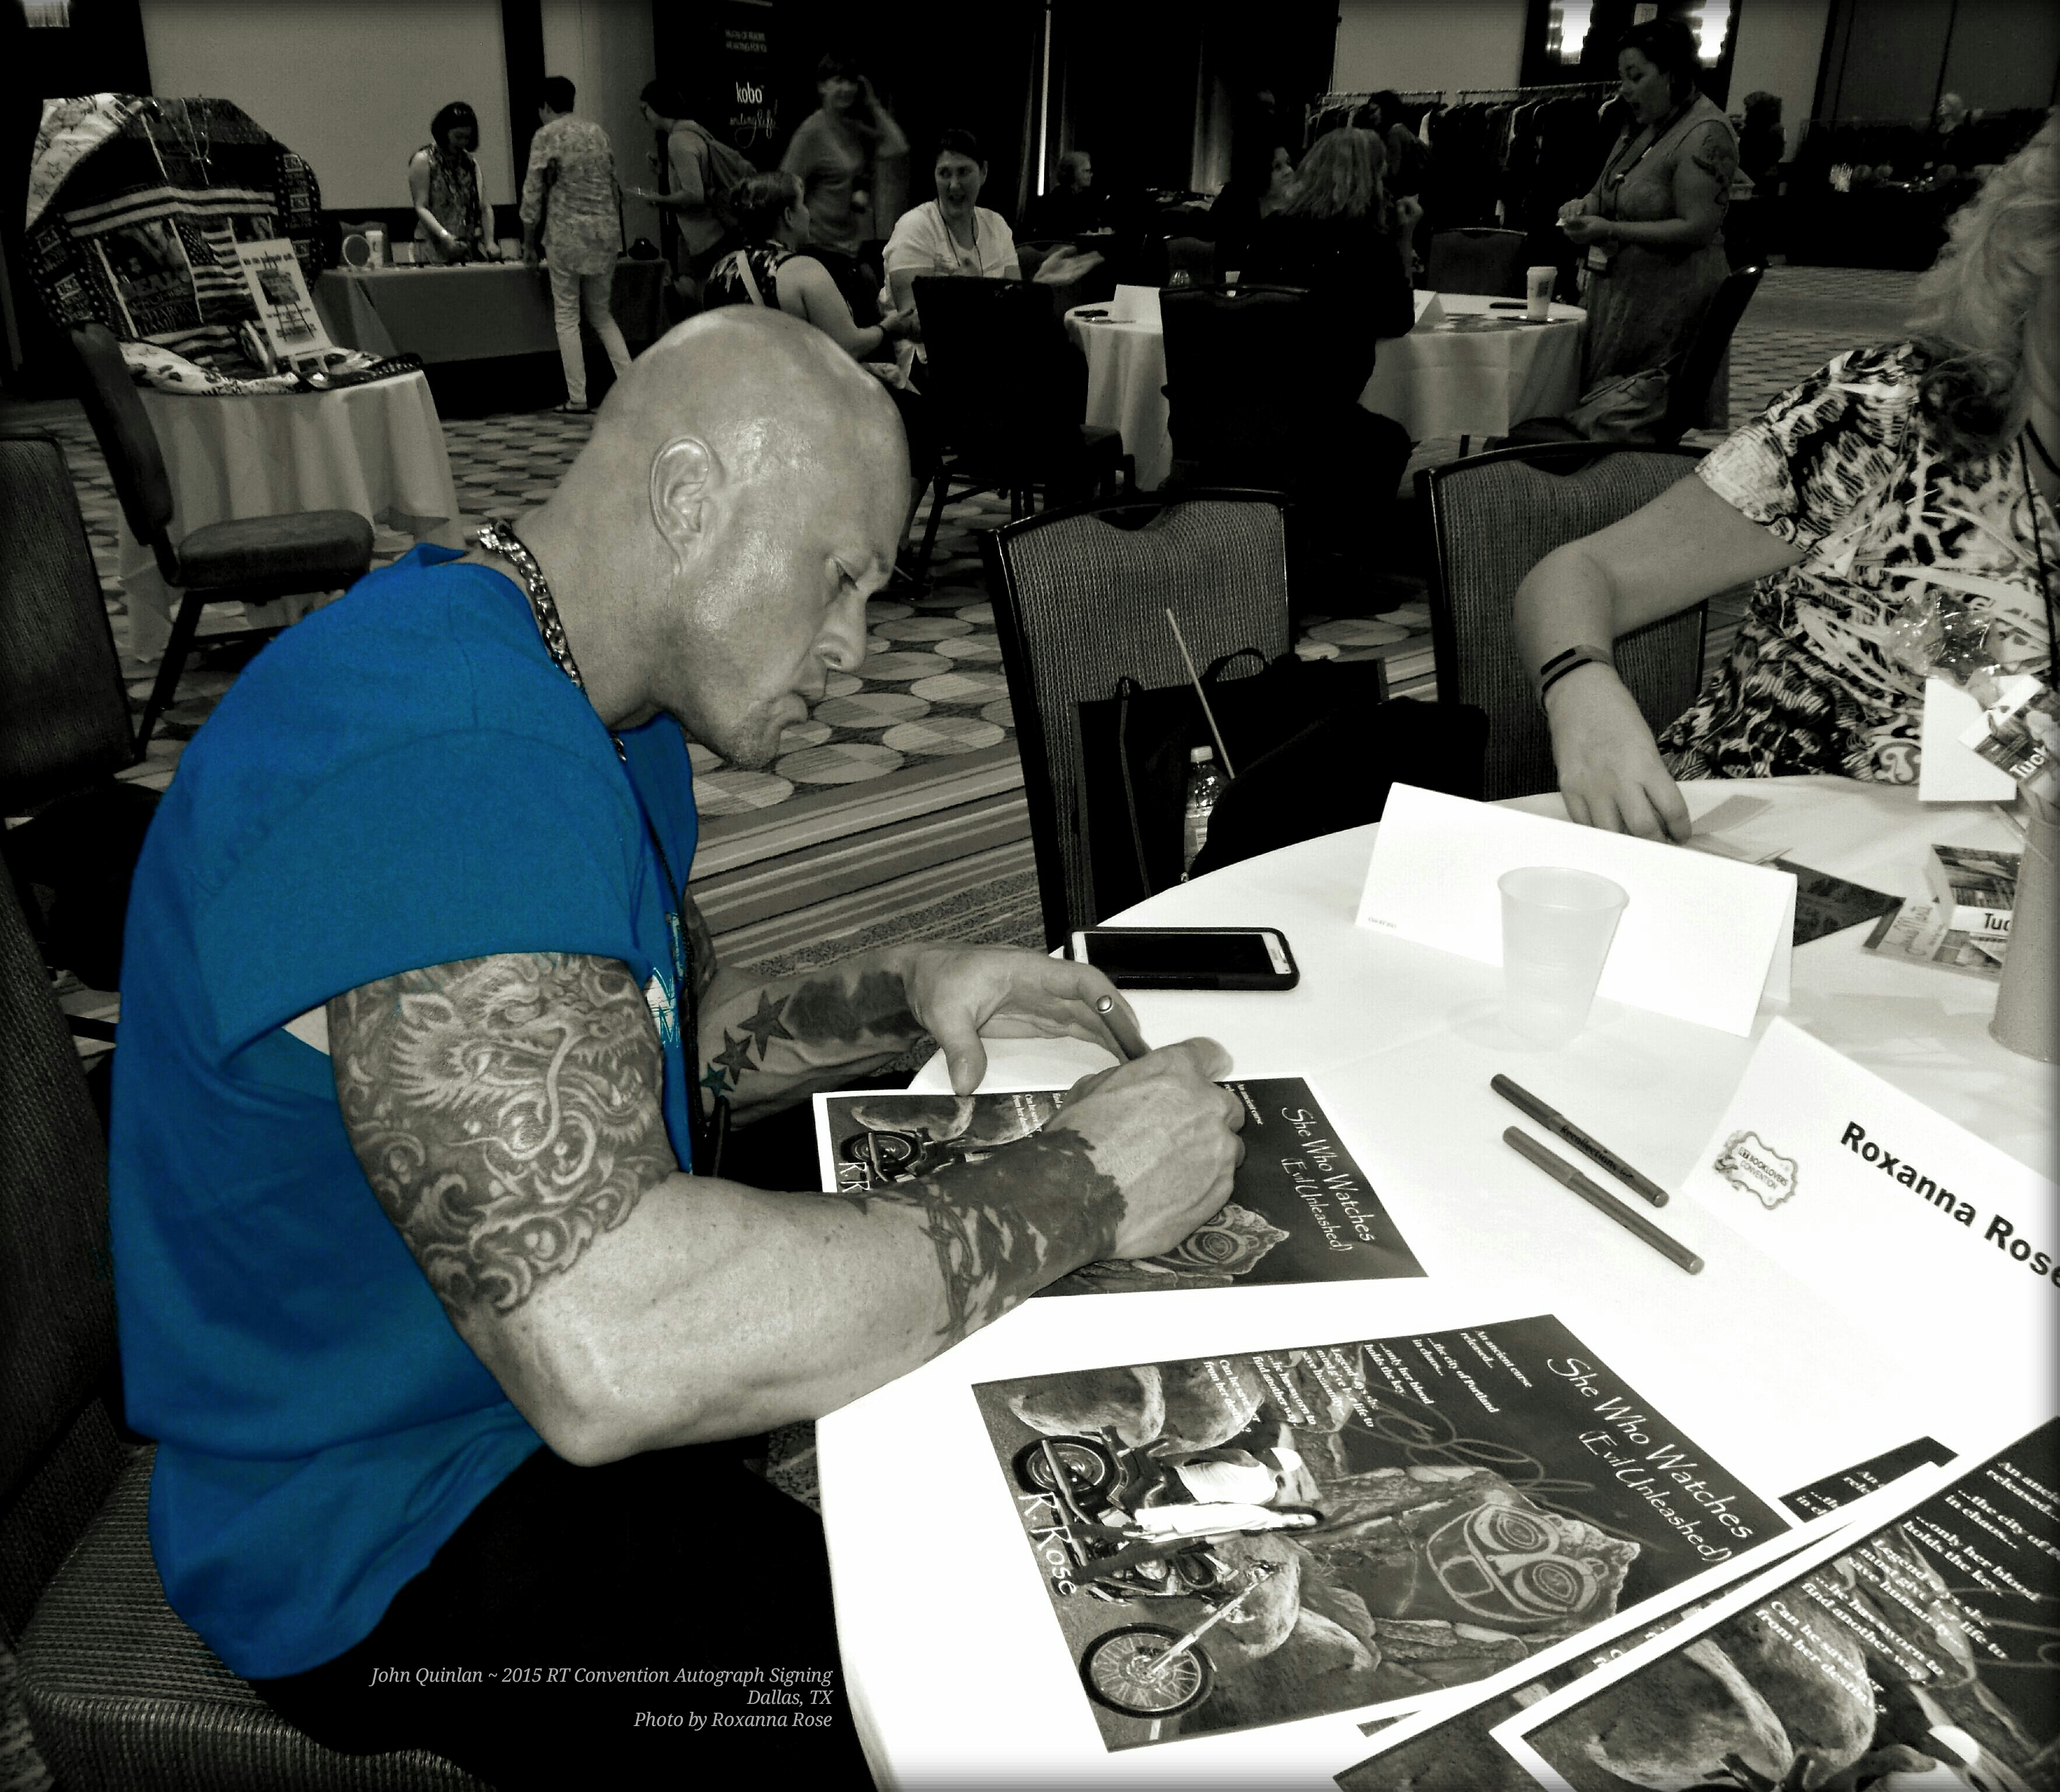 Actor & Model John Joseph Quinlan RT Covention 2015 Autograph Signing #JohnQuinlan